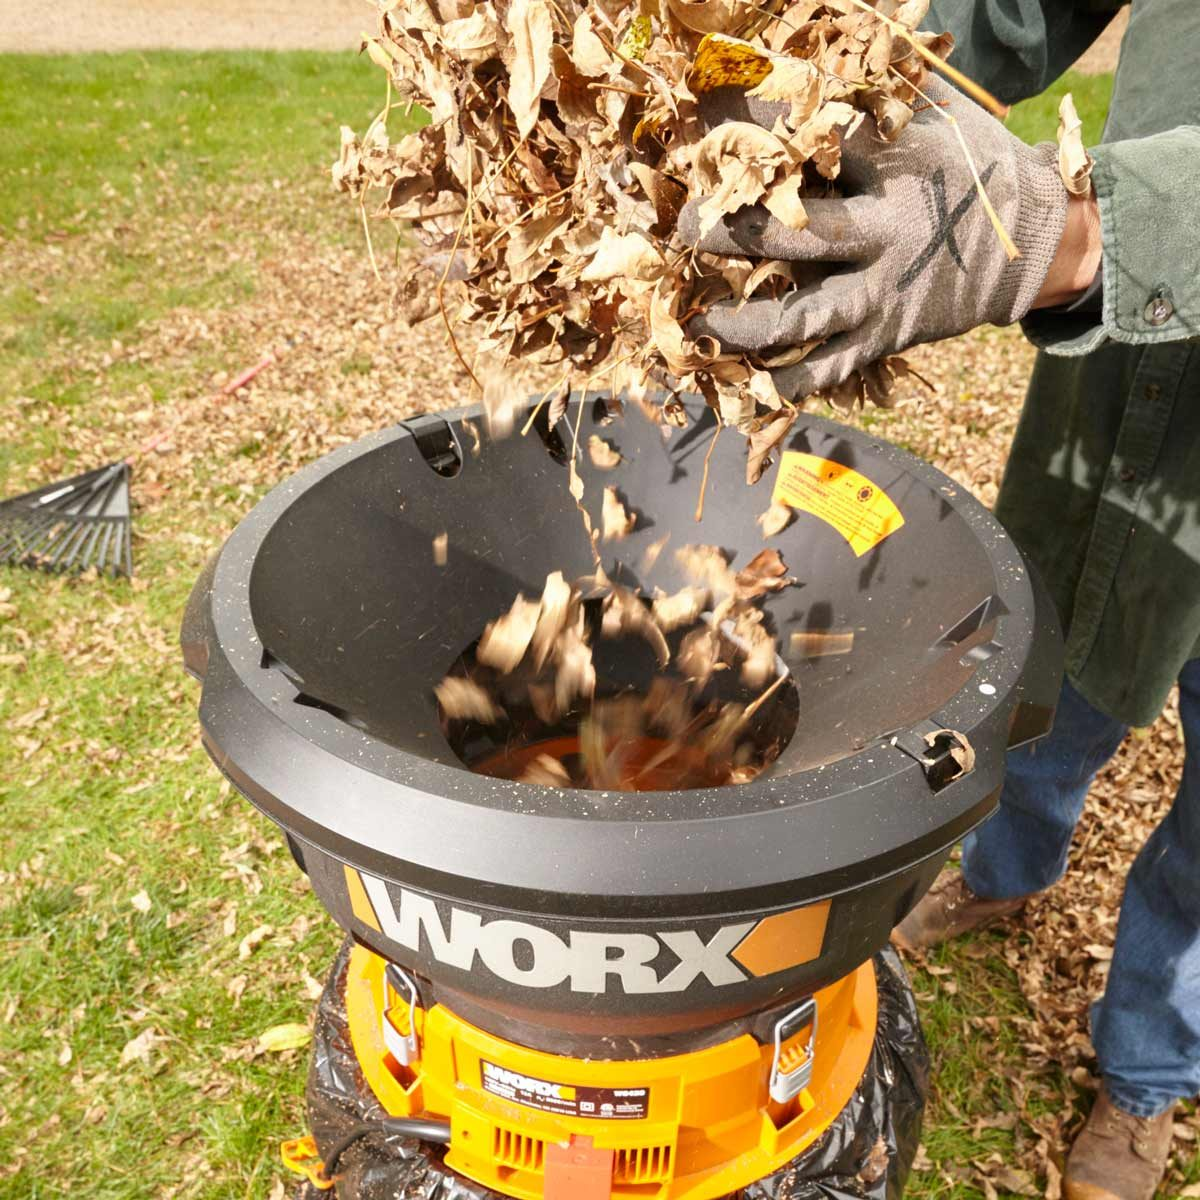 Man dumps leaves into an electric leaf mulcher